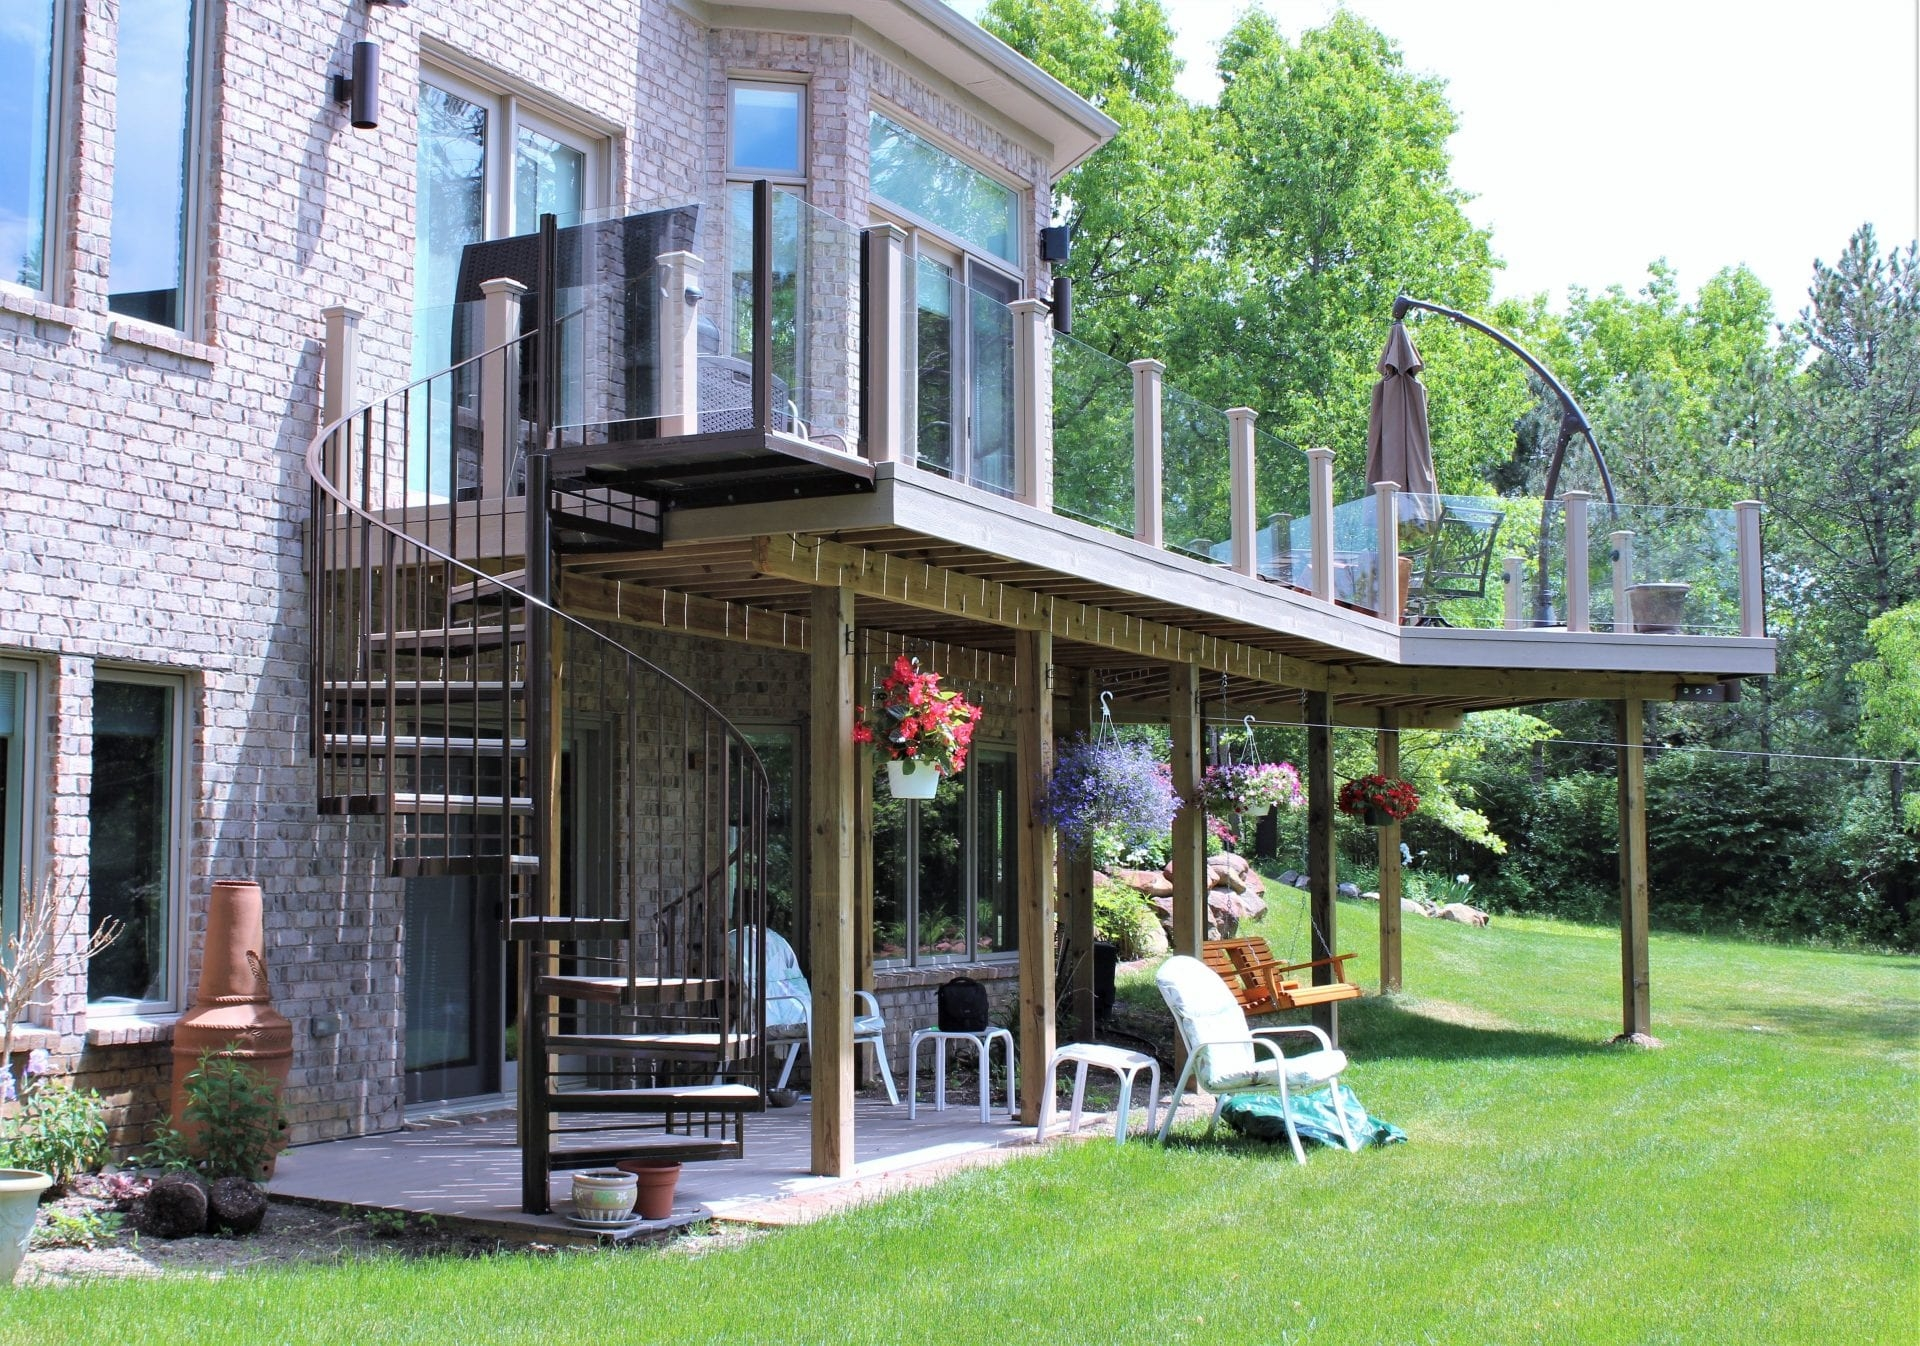 Brown Exterior Spiral Staircase Great Lakes Metal Fabrication | Spiral Staircase With Glass Railing | Exterior | In India Staircase | Stair Wood Bracket | Glass Insert | Inside Glass